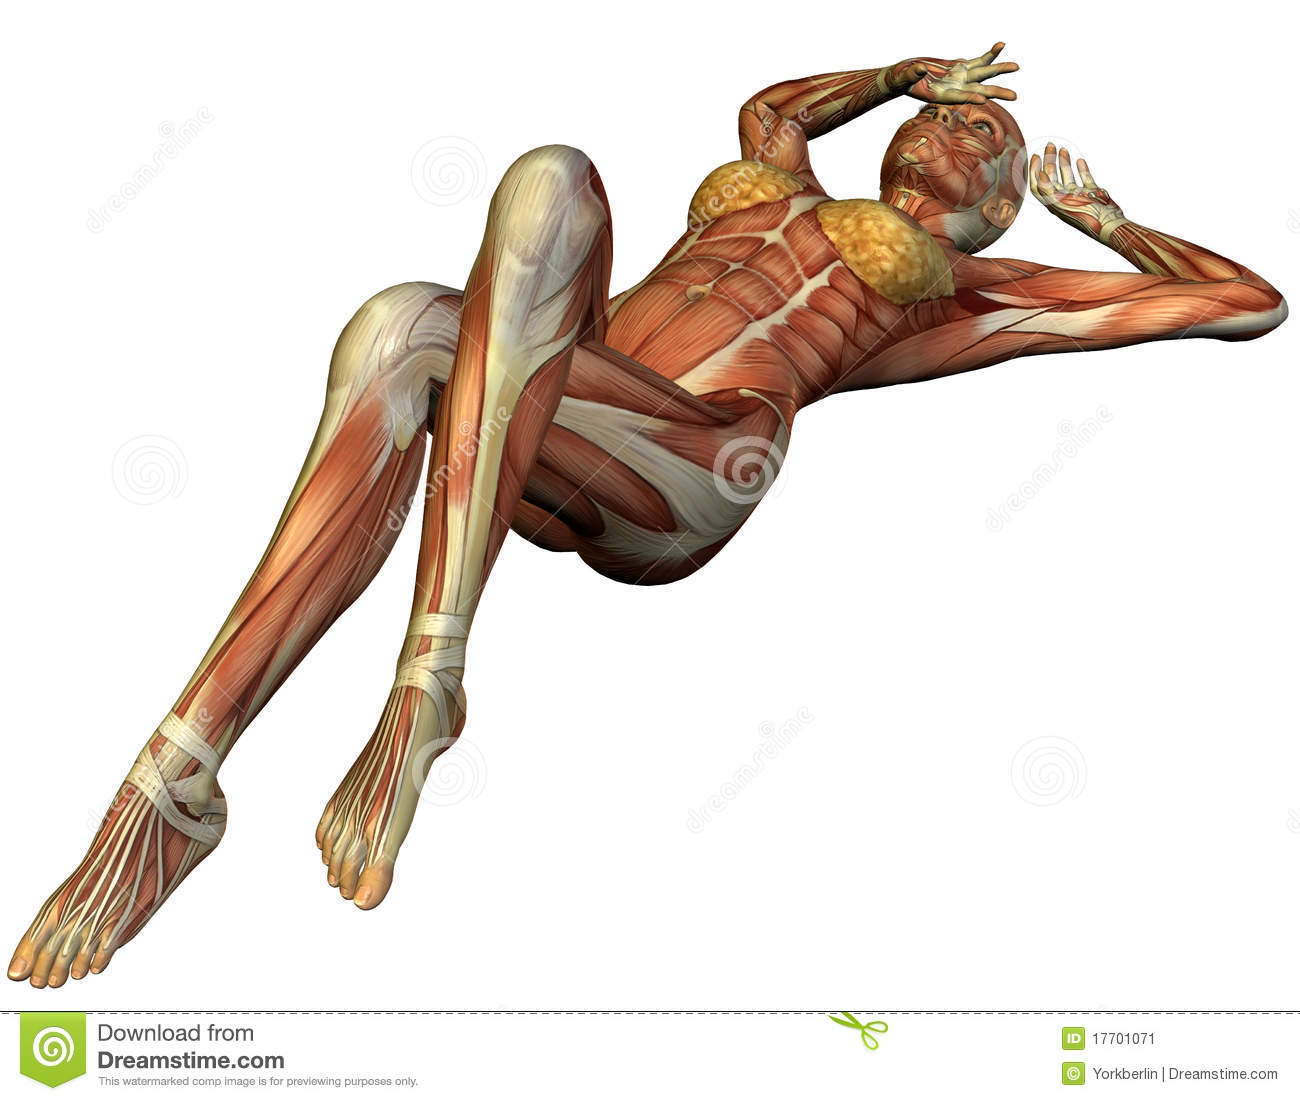 muscle structure of a supine woman stock image - image: 17701071, Muscles